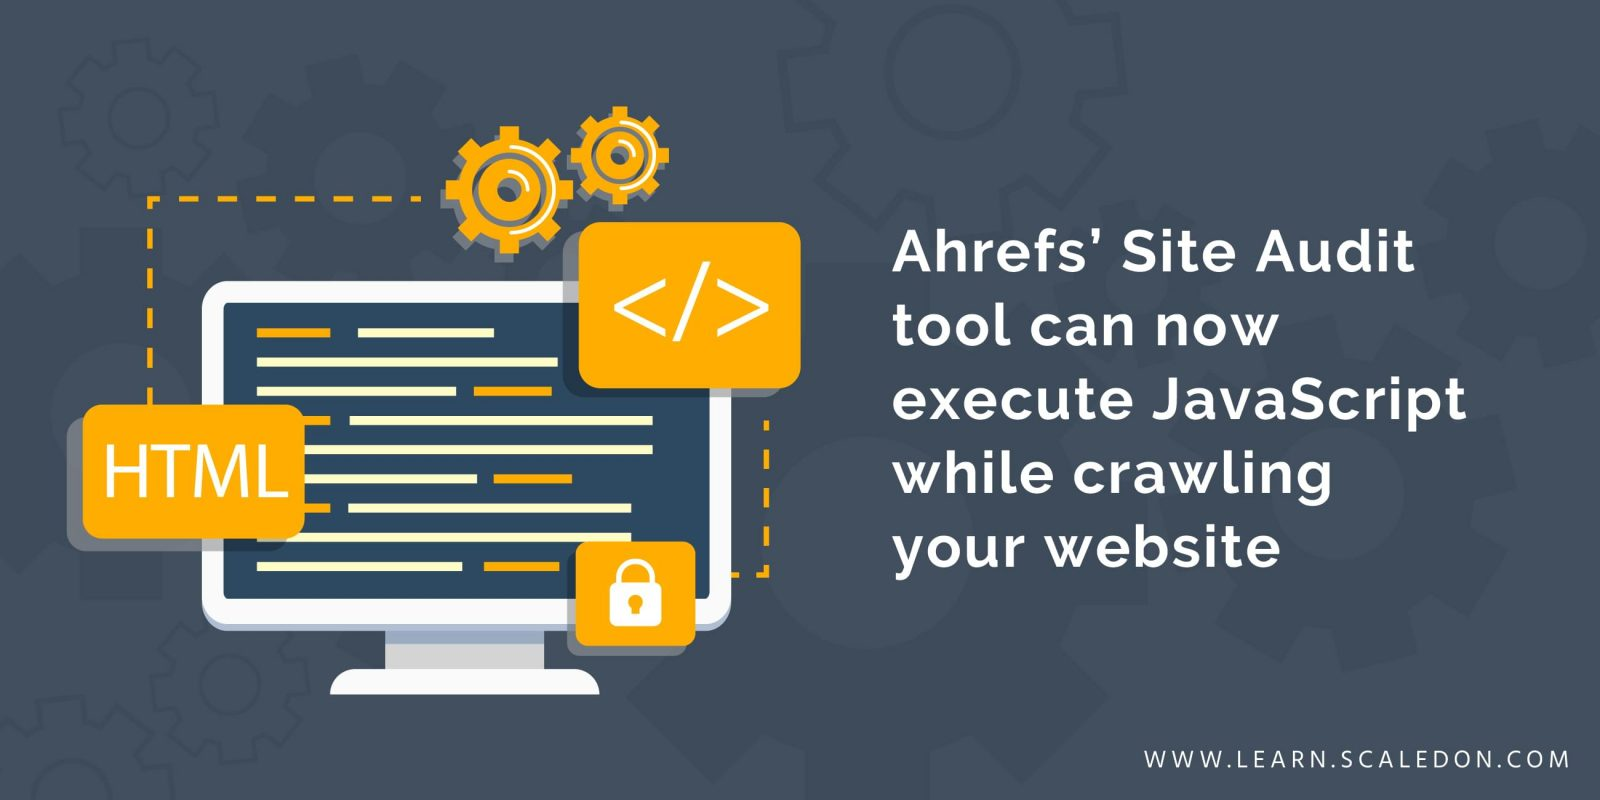 Ahrefs Site Audit tool can now execute JavaScript while crawling your website